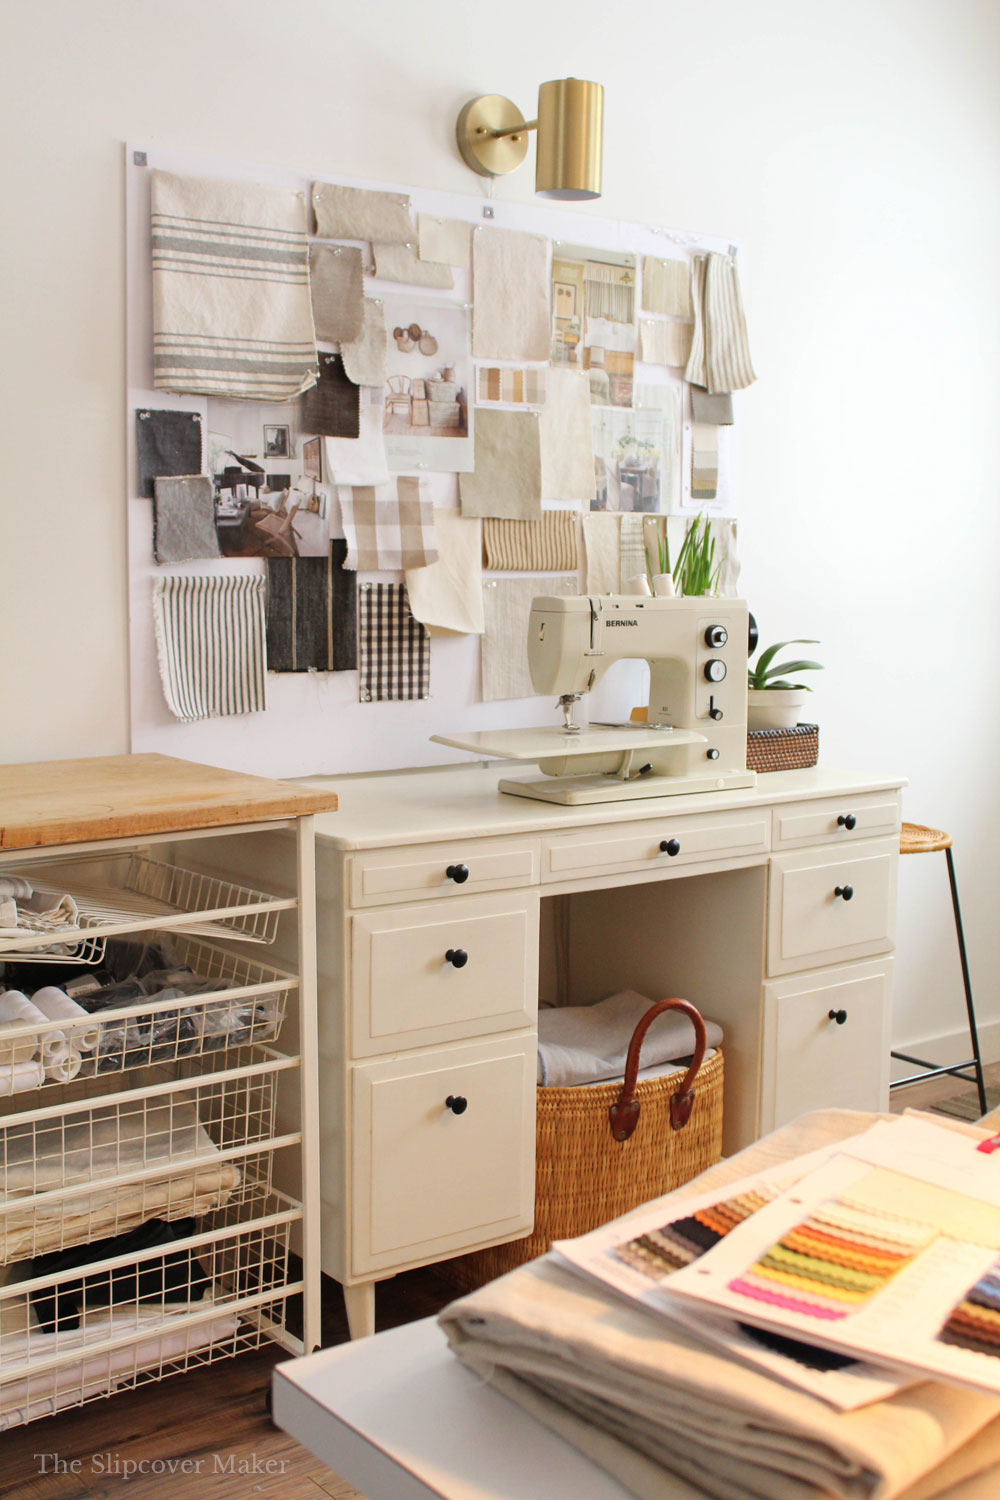 My Tiny Slipcover Workroom + Tips for Flourishing in a Small Space